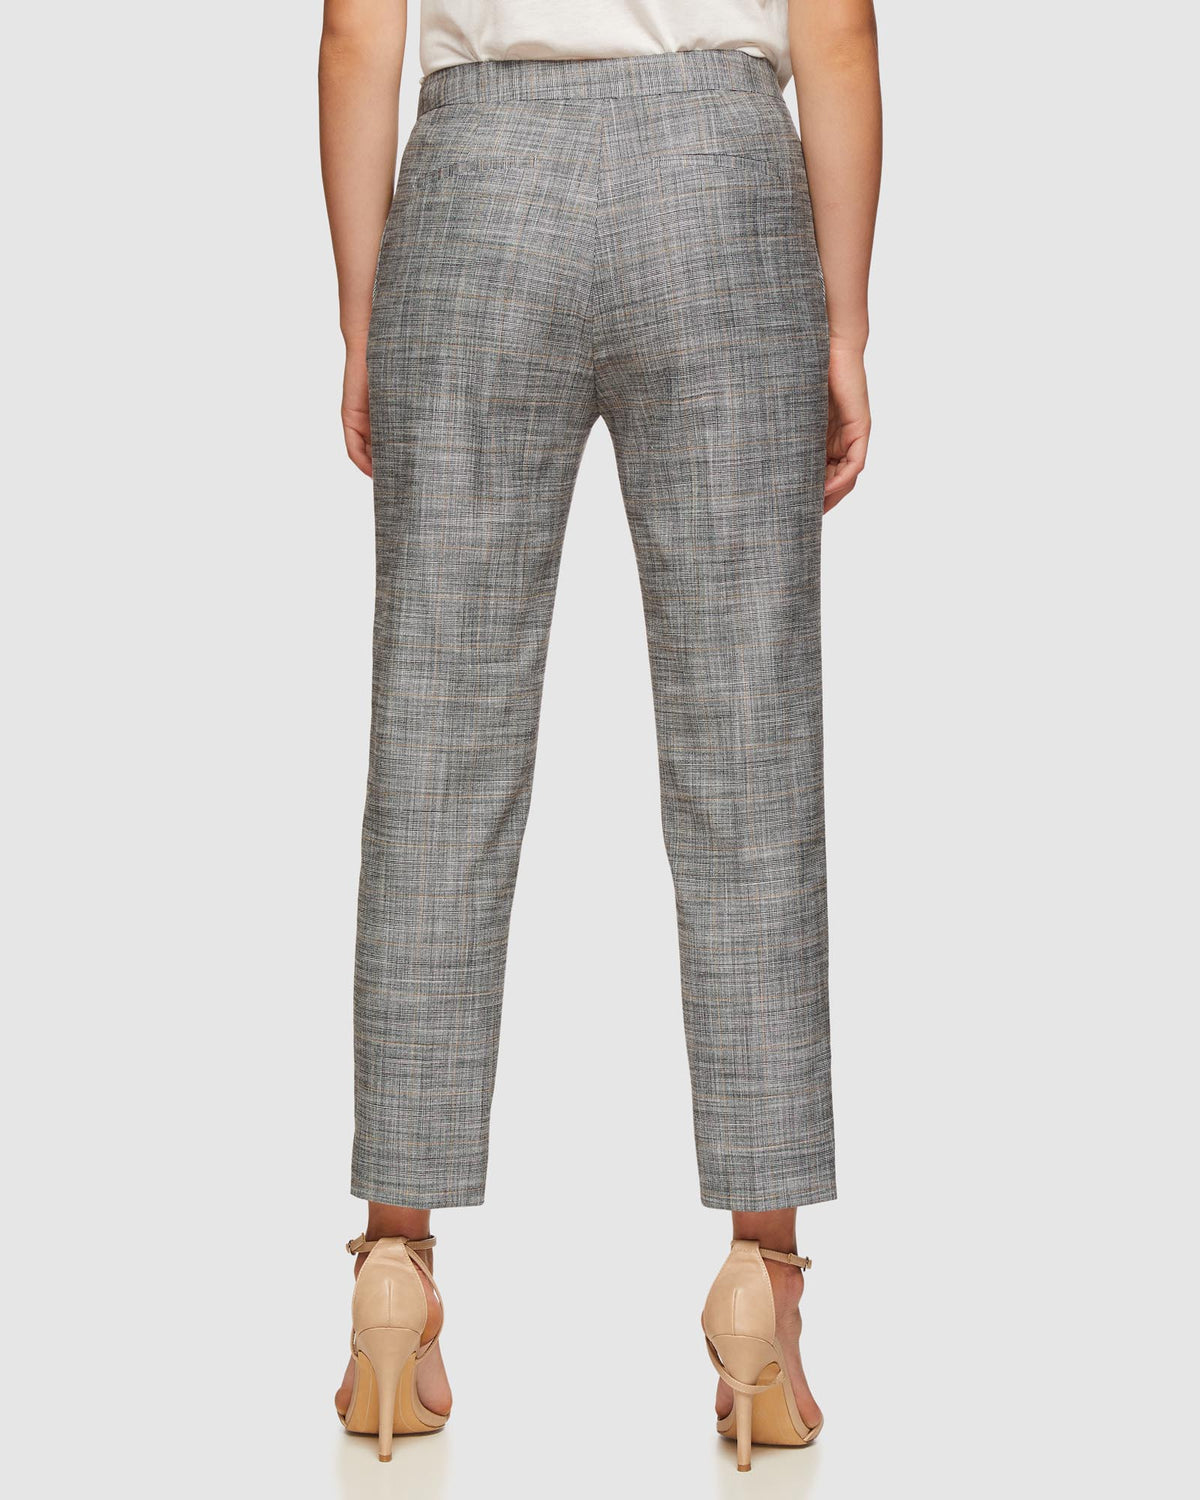 CHARLA ECO CHECKED SUIT TROUSERS GREY CHECK